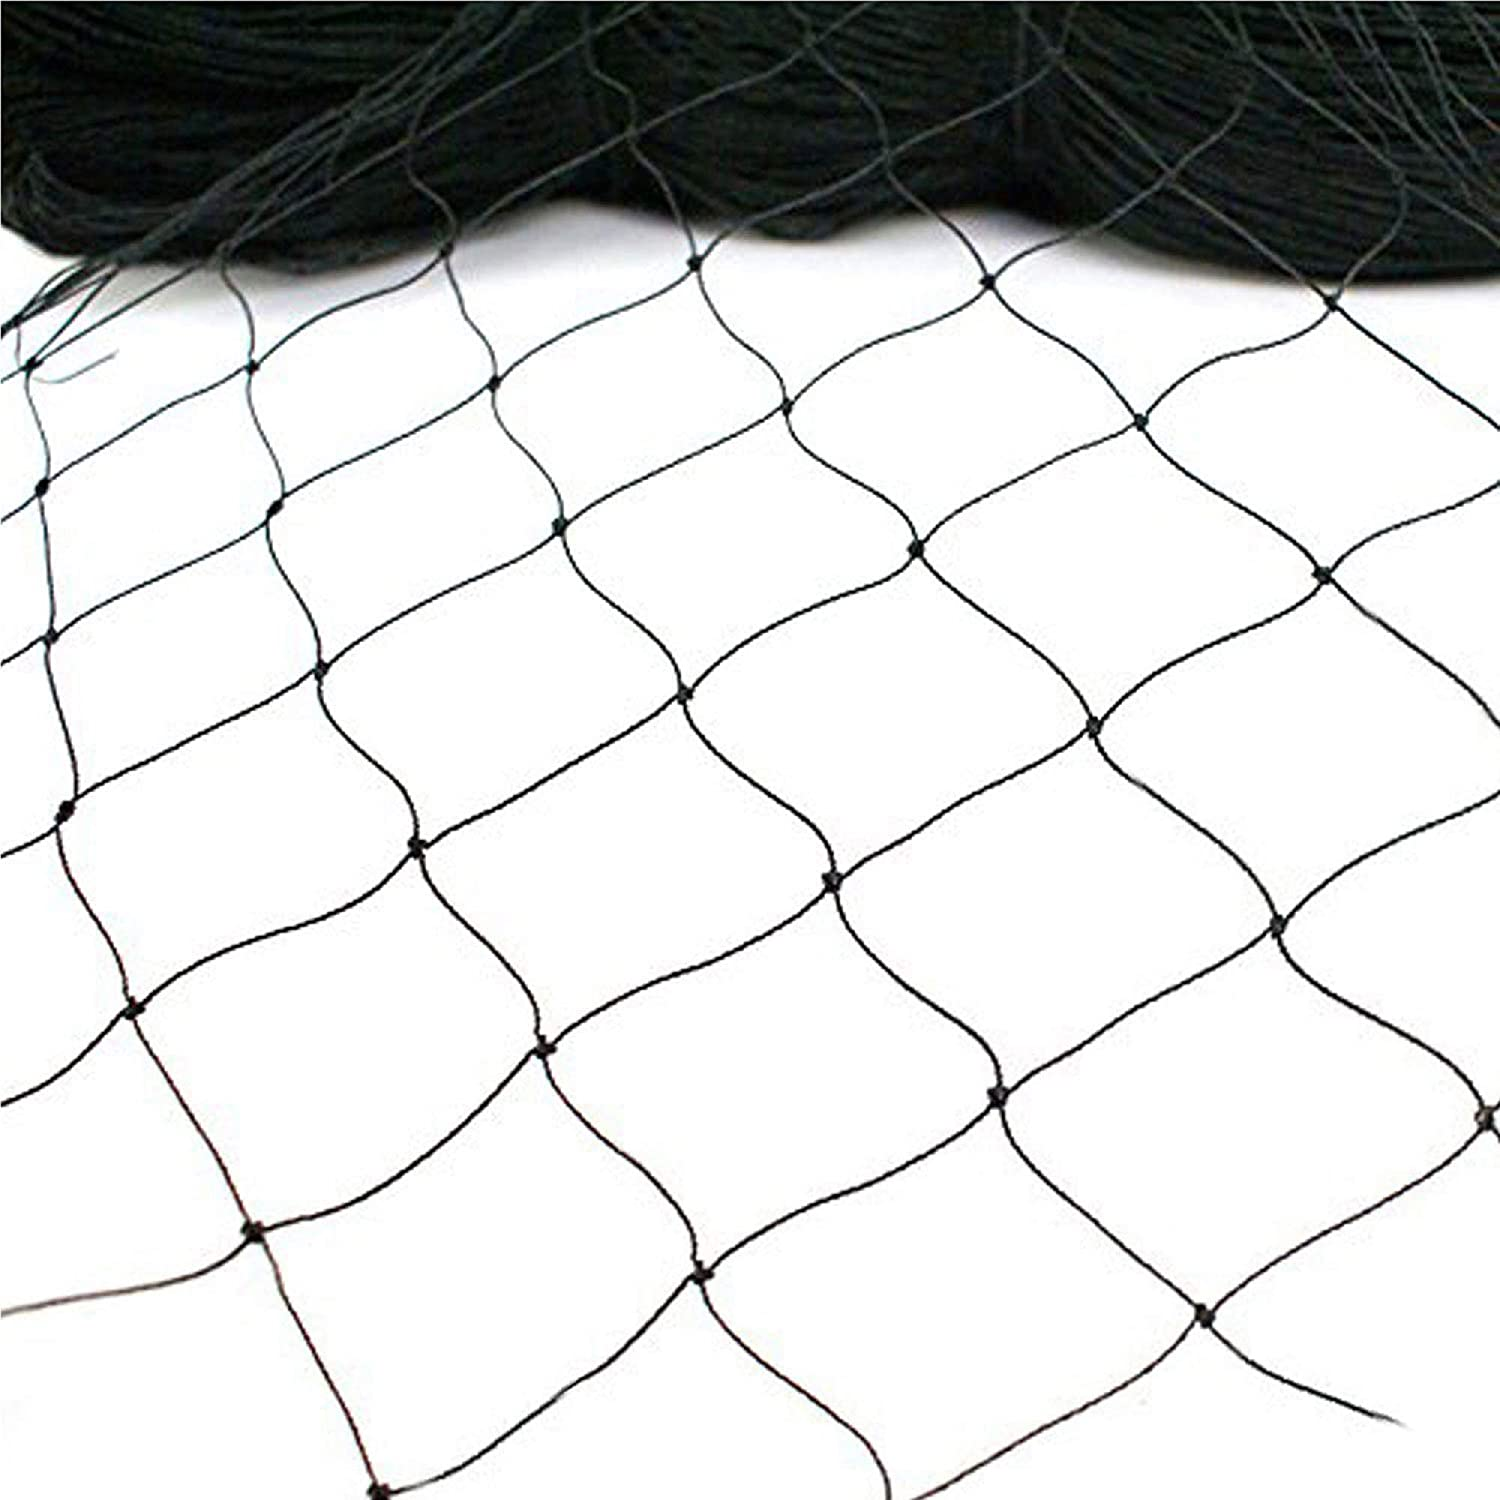 25' Quality inspection X 50' Net Netting for Bird Poultry New Pens Game Aviary famous S 1